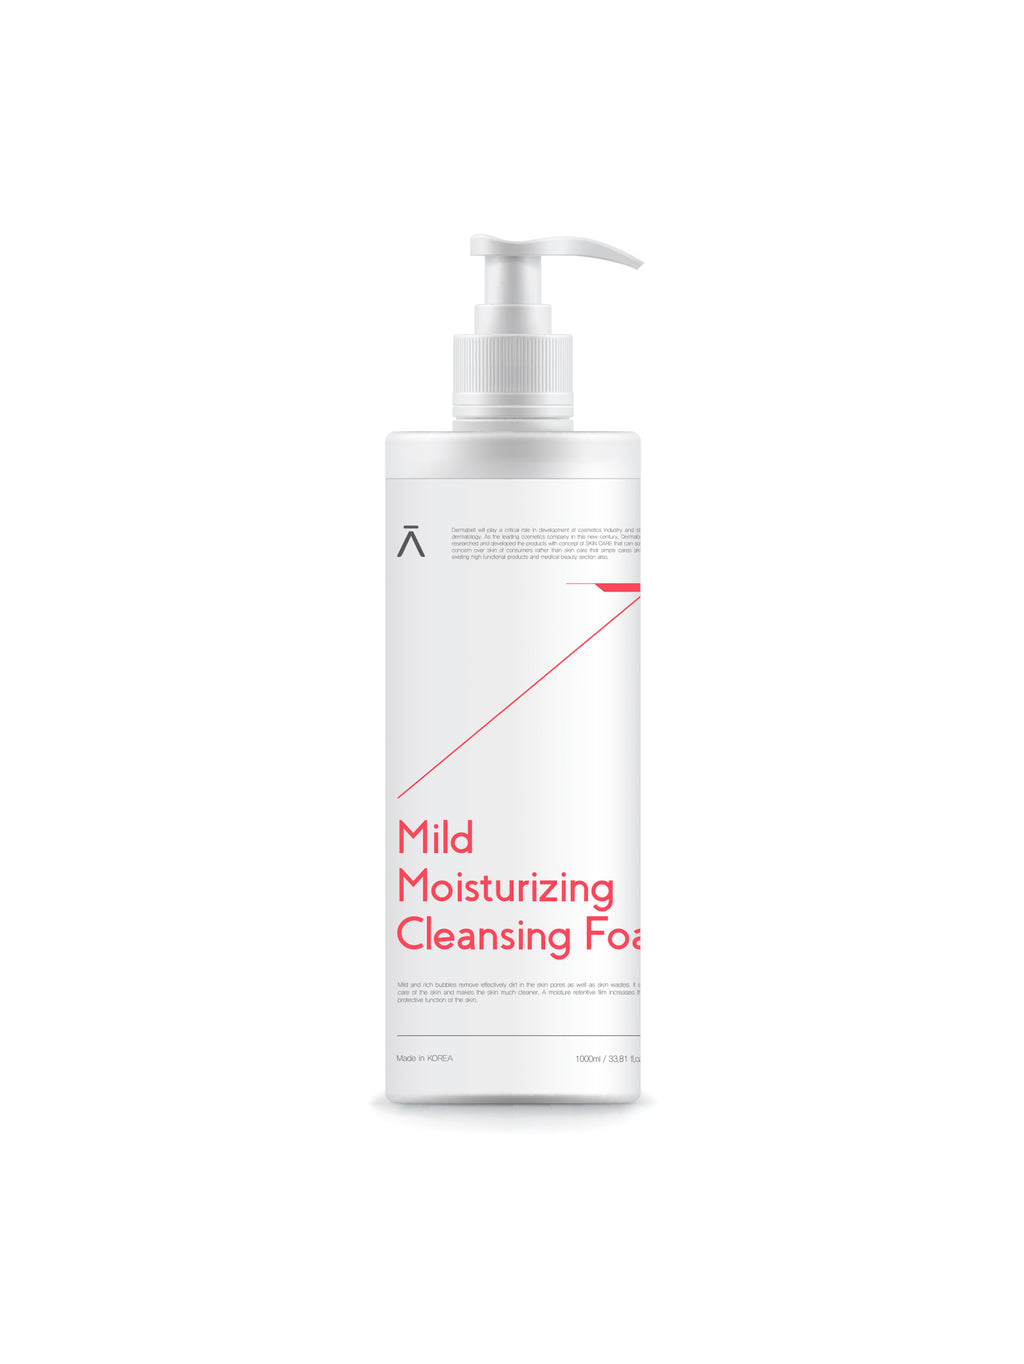 Mild Moisturizing Cleansing Foam (Soft & Moist Facial Foam)